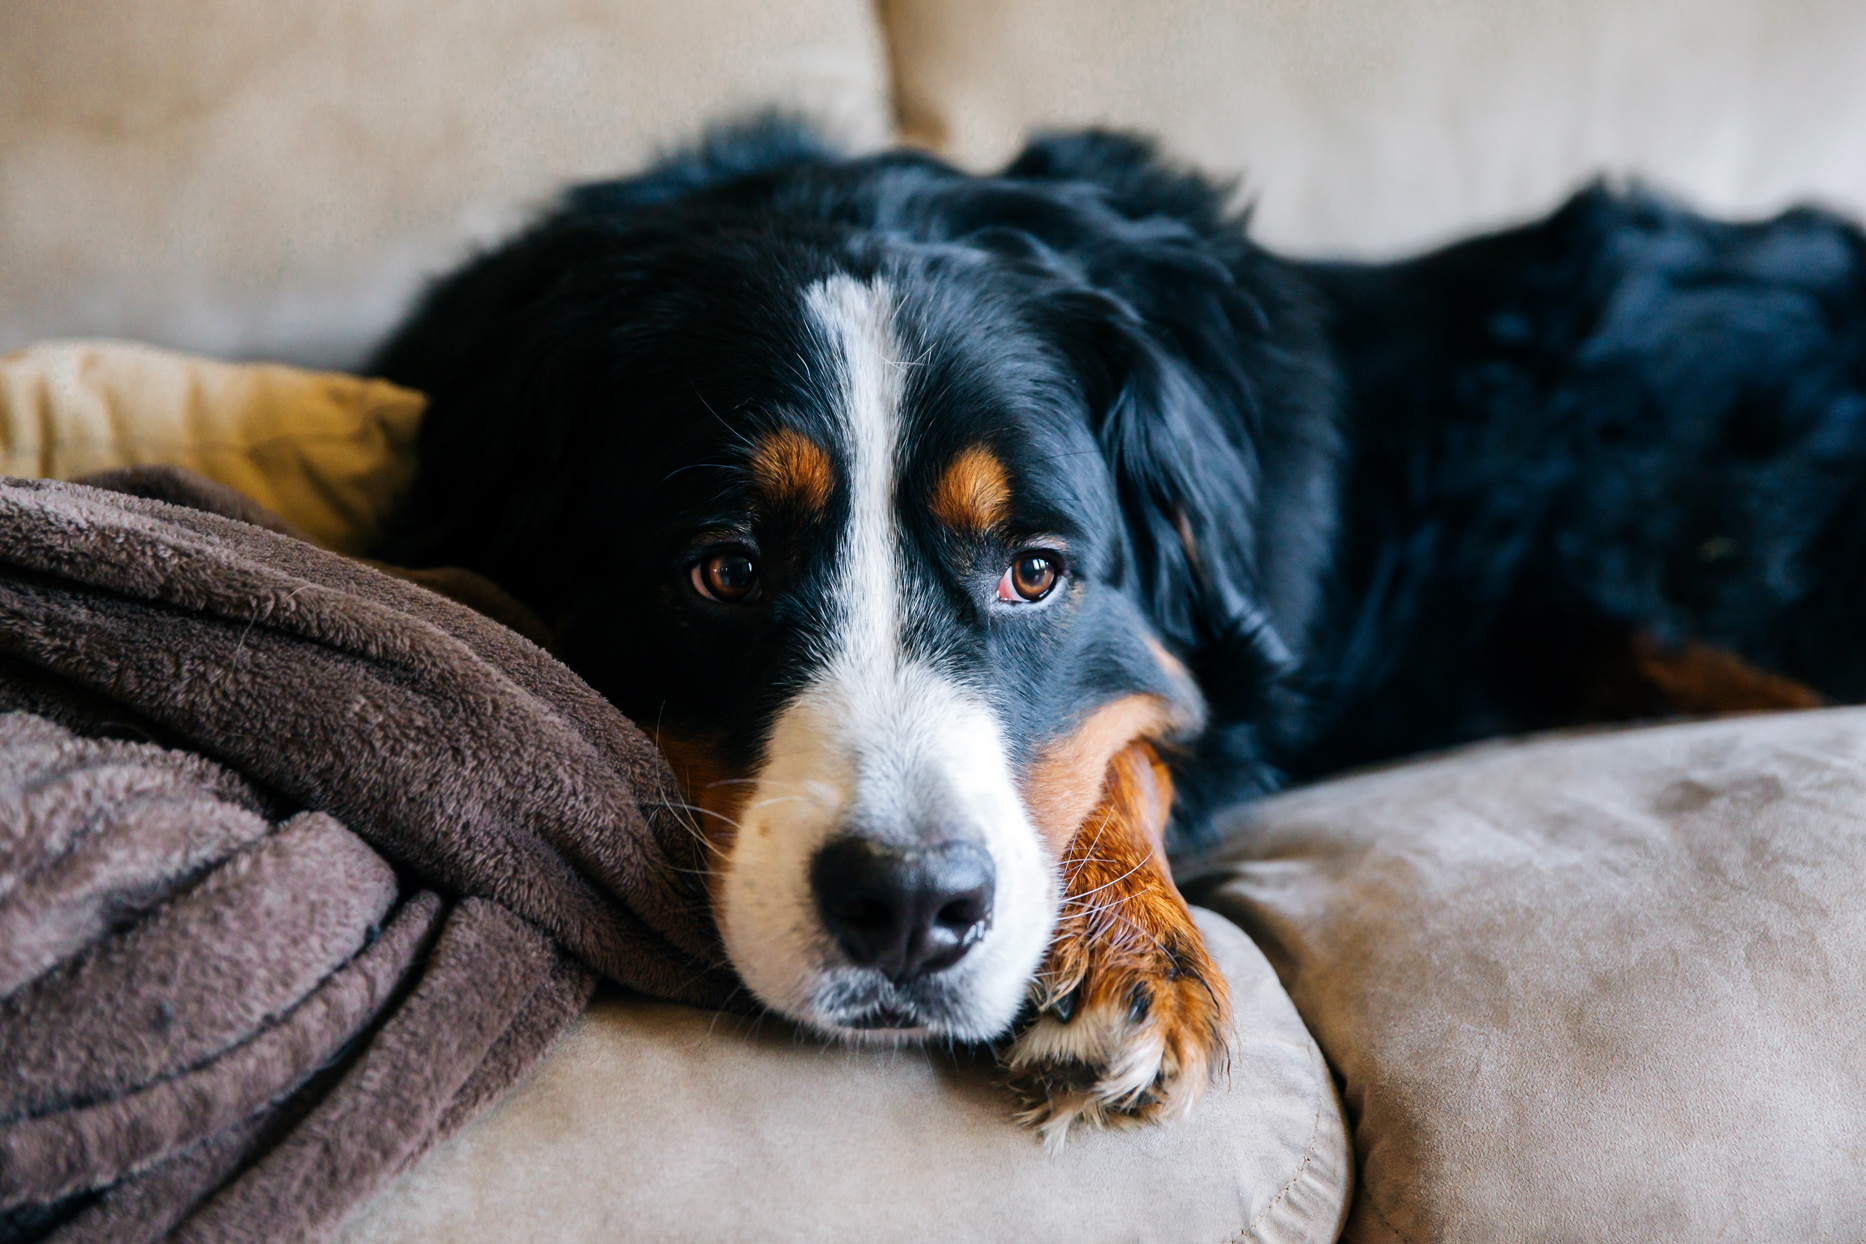 bernese mountain dog sad face laying on couch